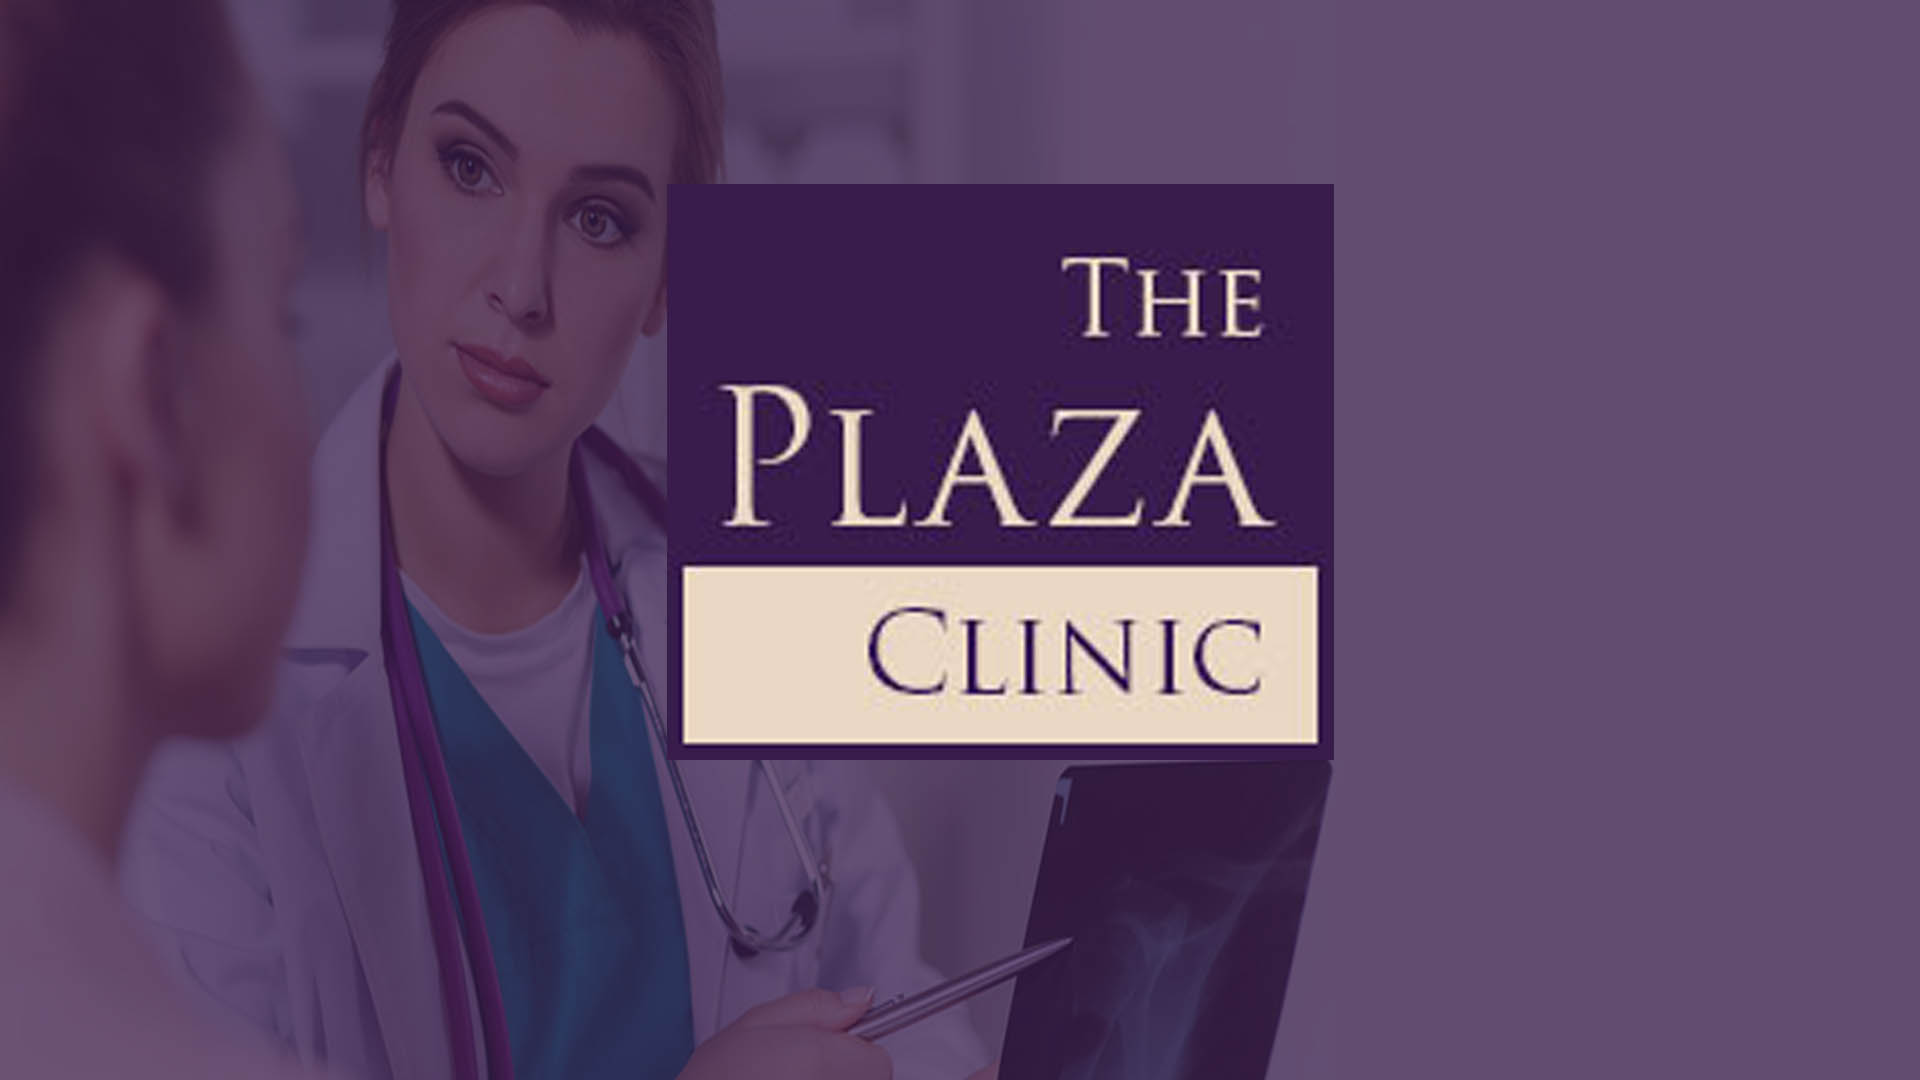 Portfolio: The Plaza Clinic